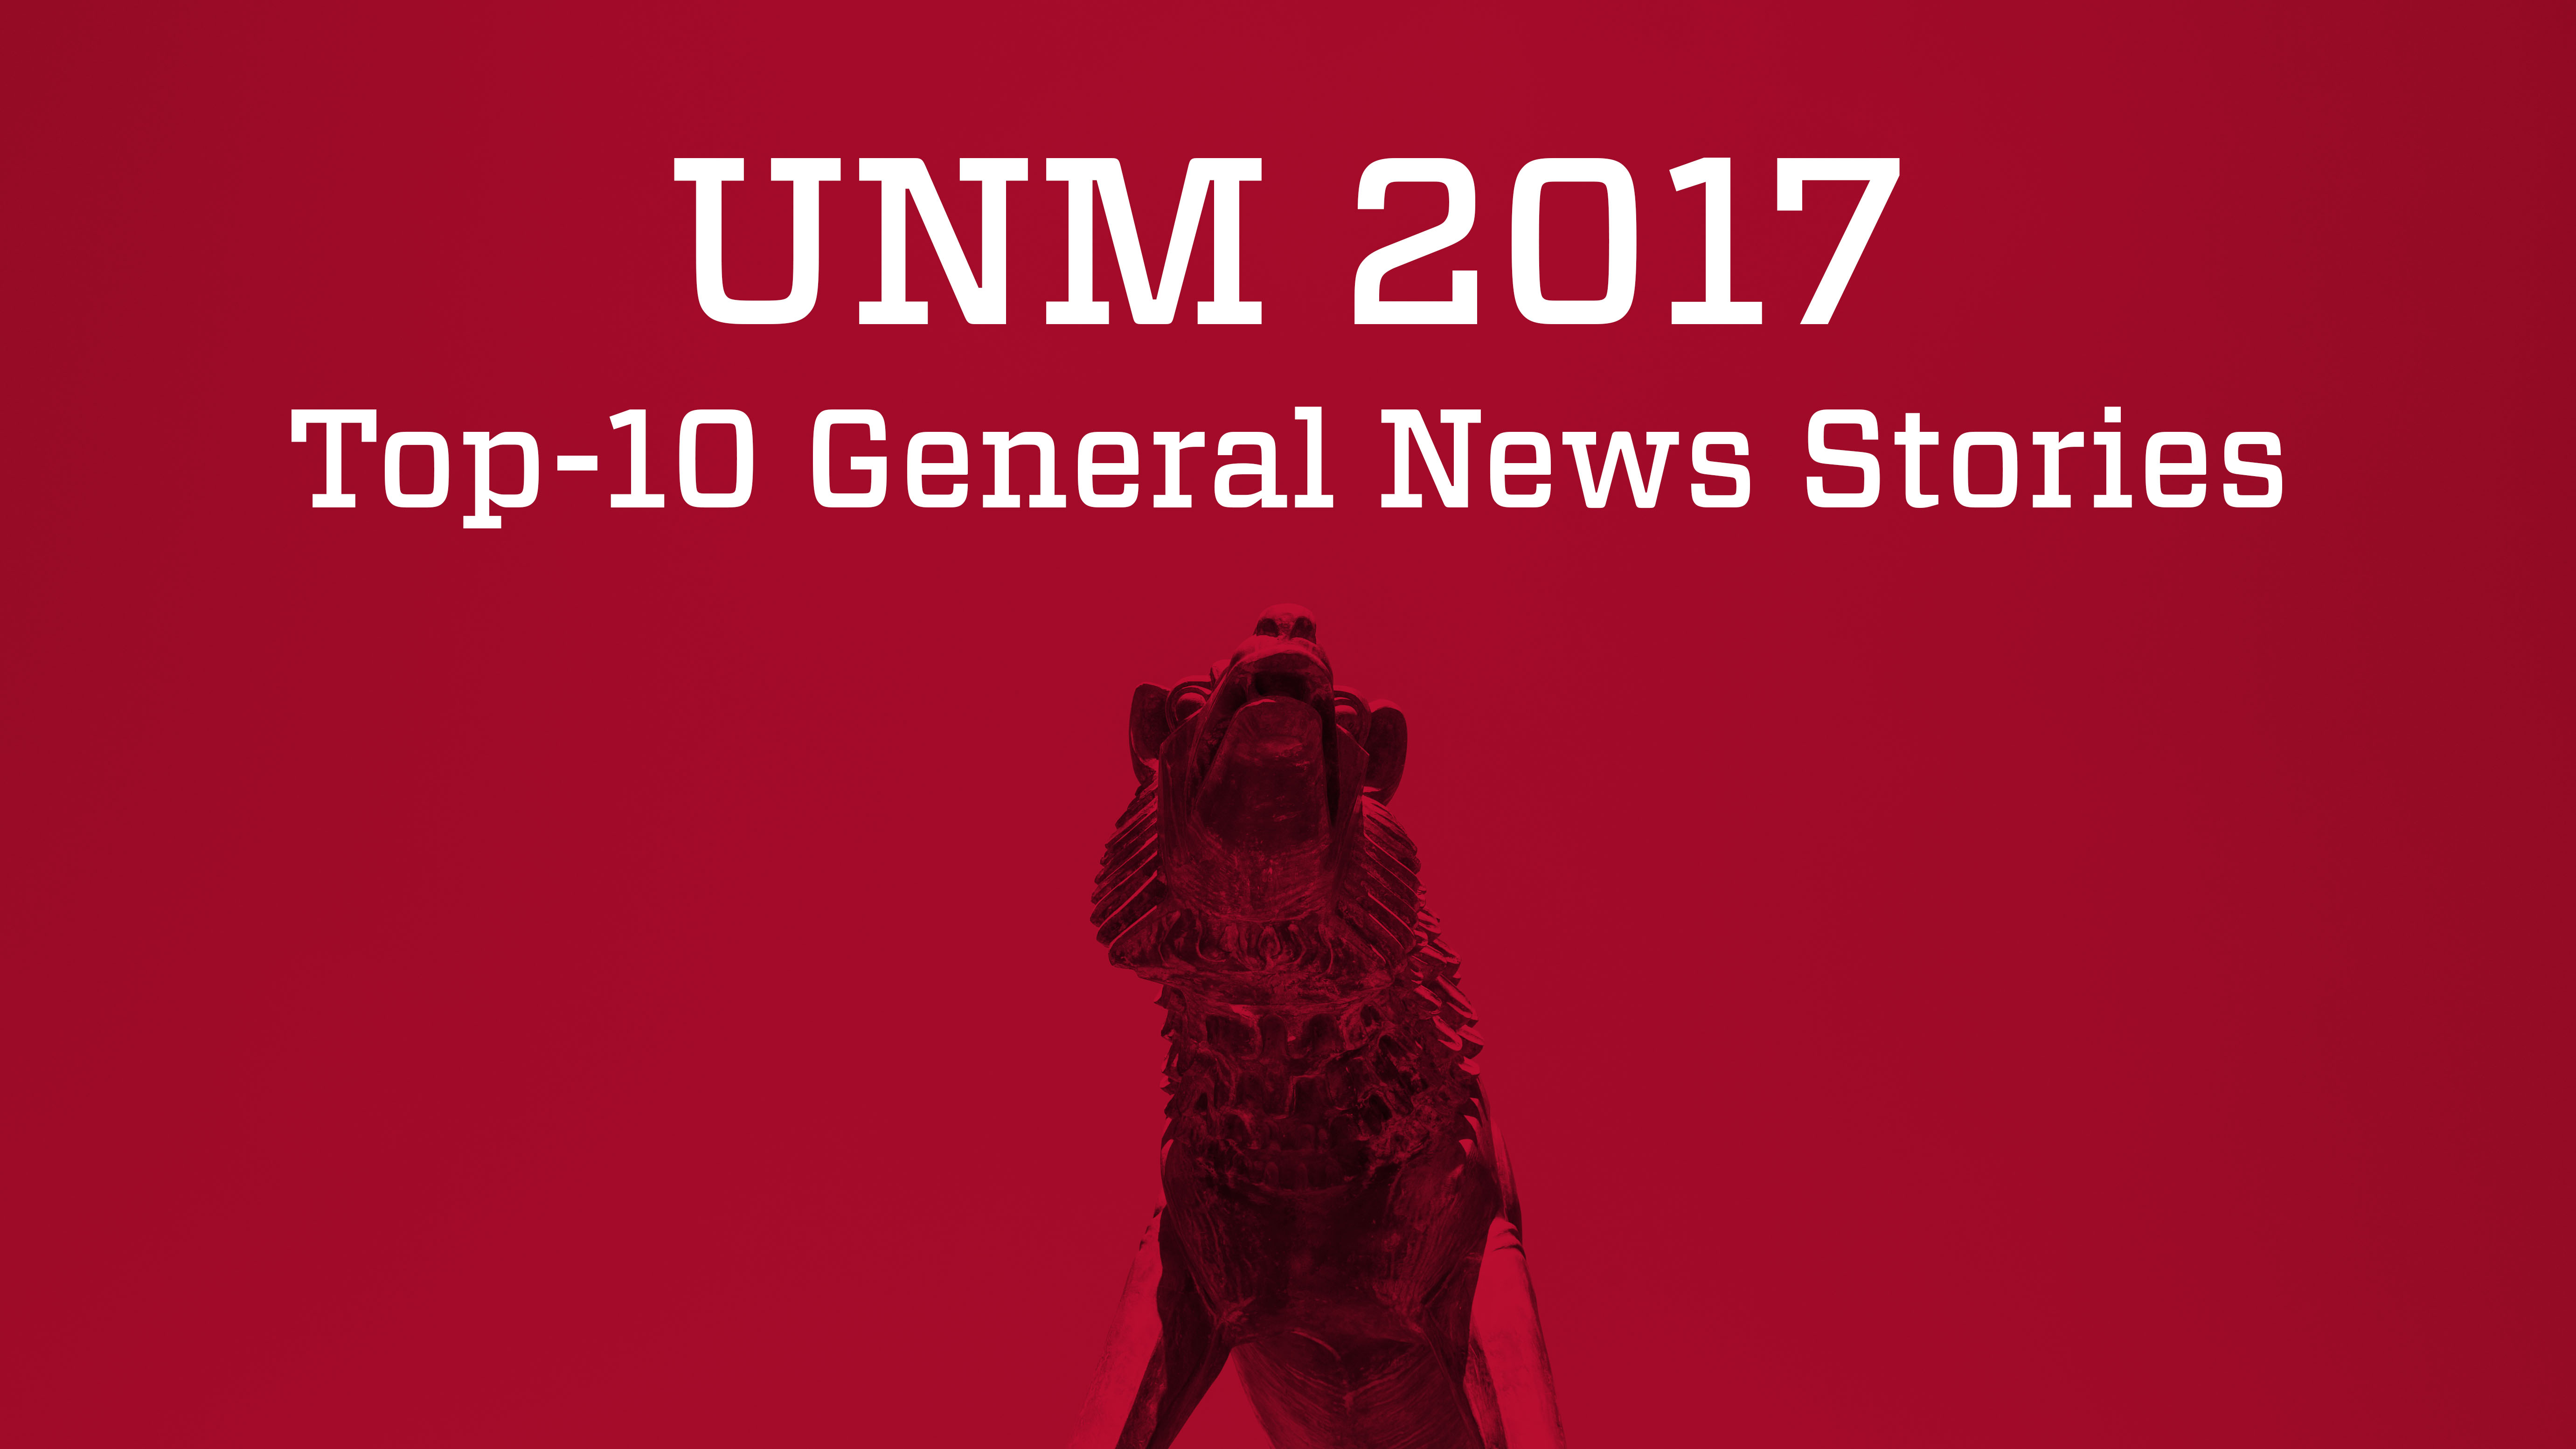 UNM's 2017 top-10 general news stories